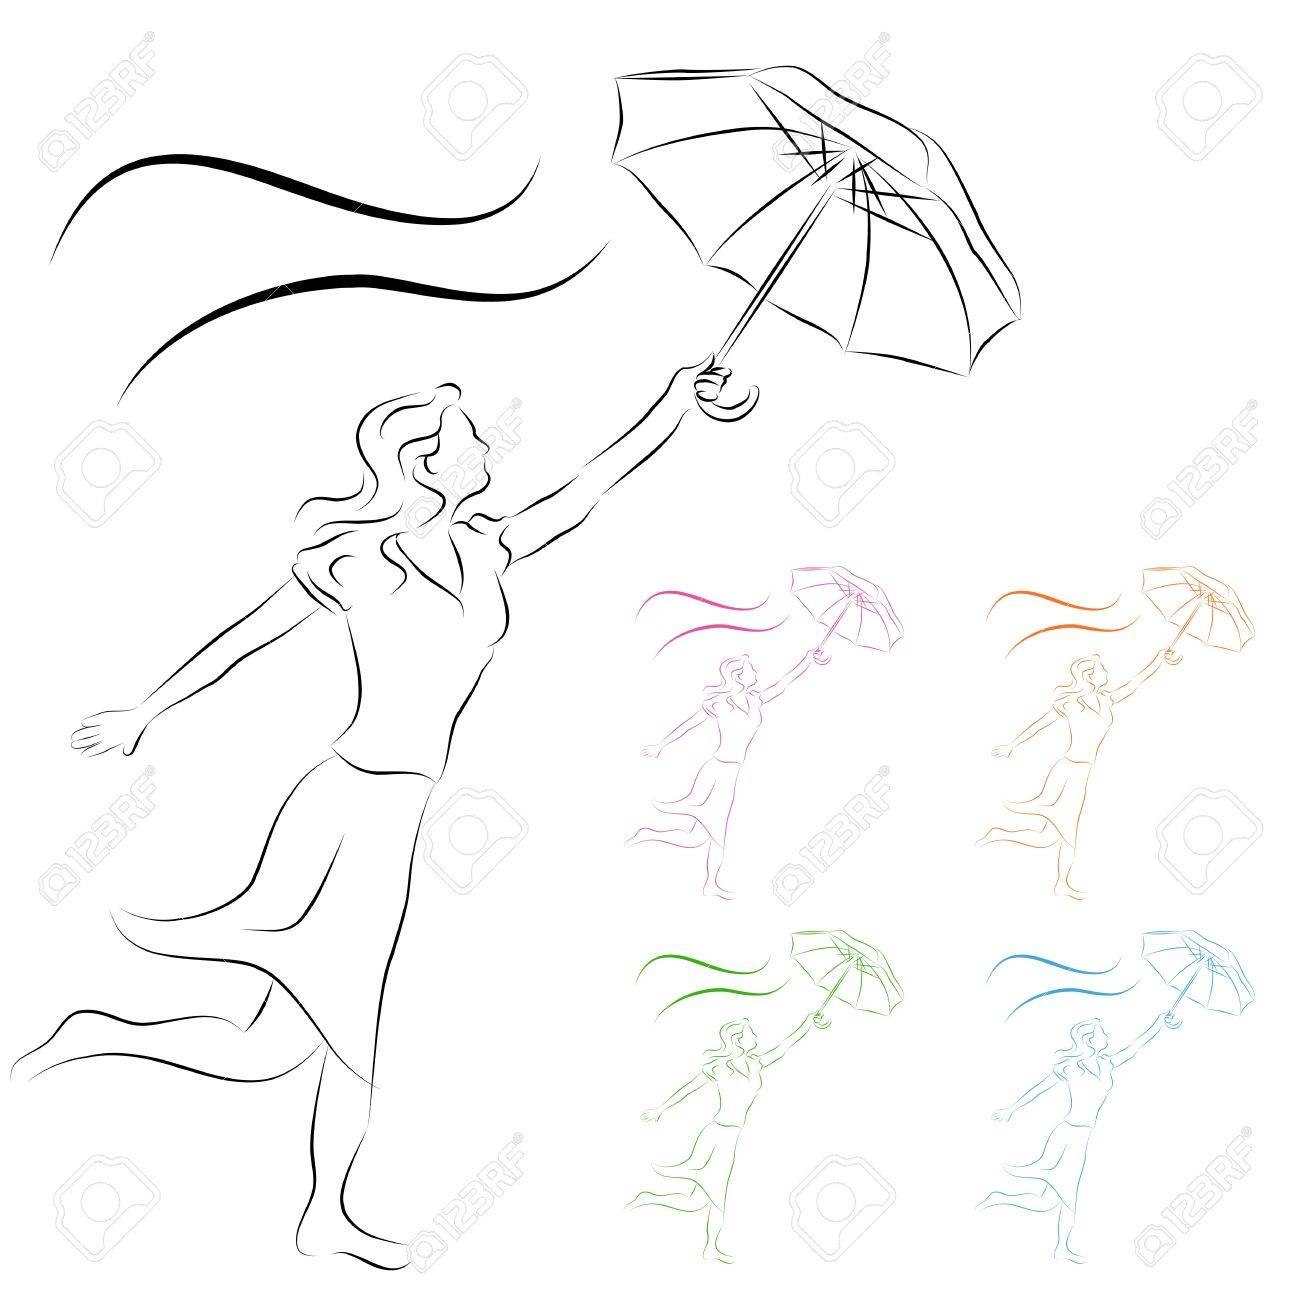 An image of a woman holding an umbrella line drawing. - 9552306